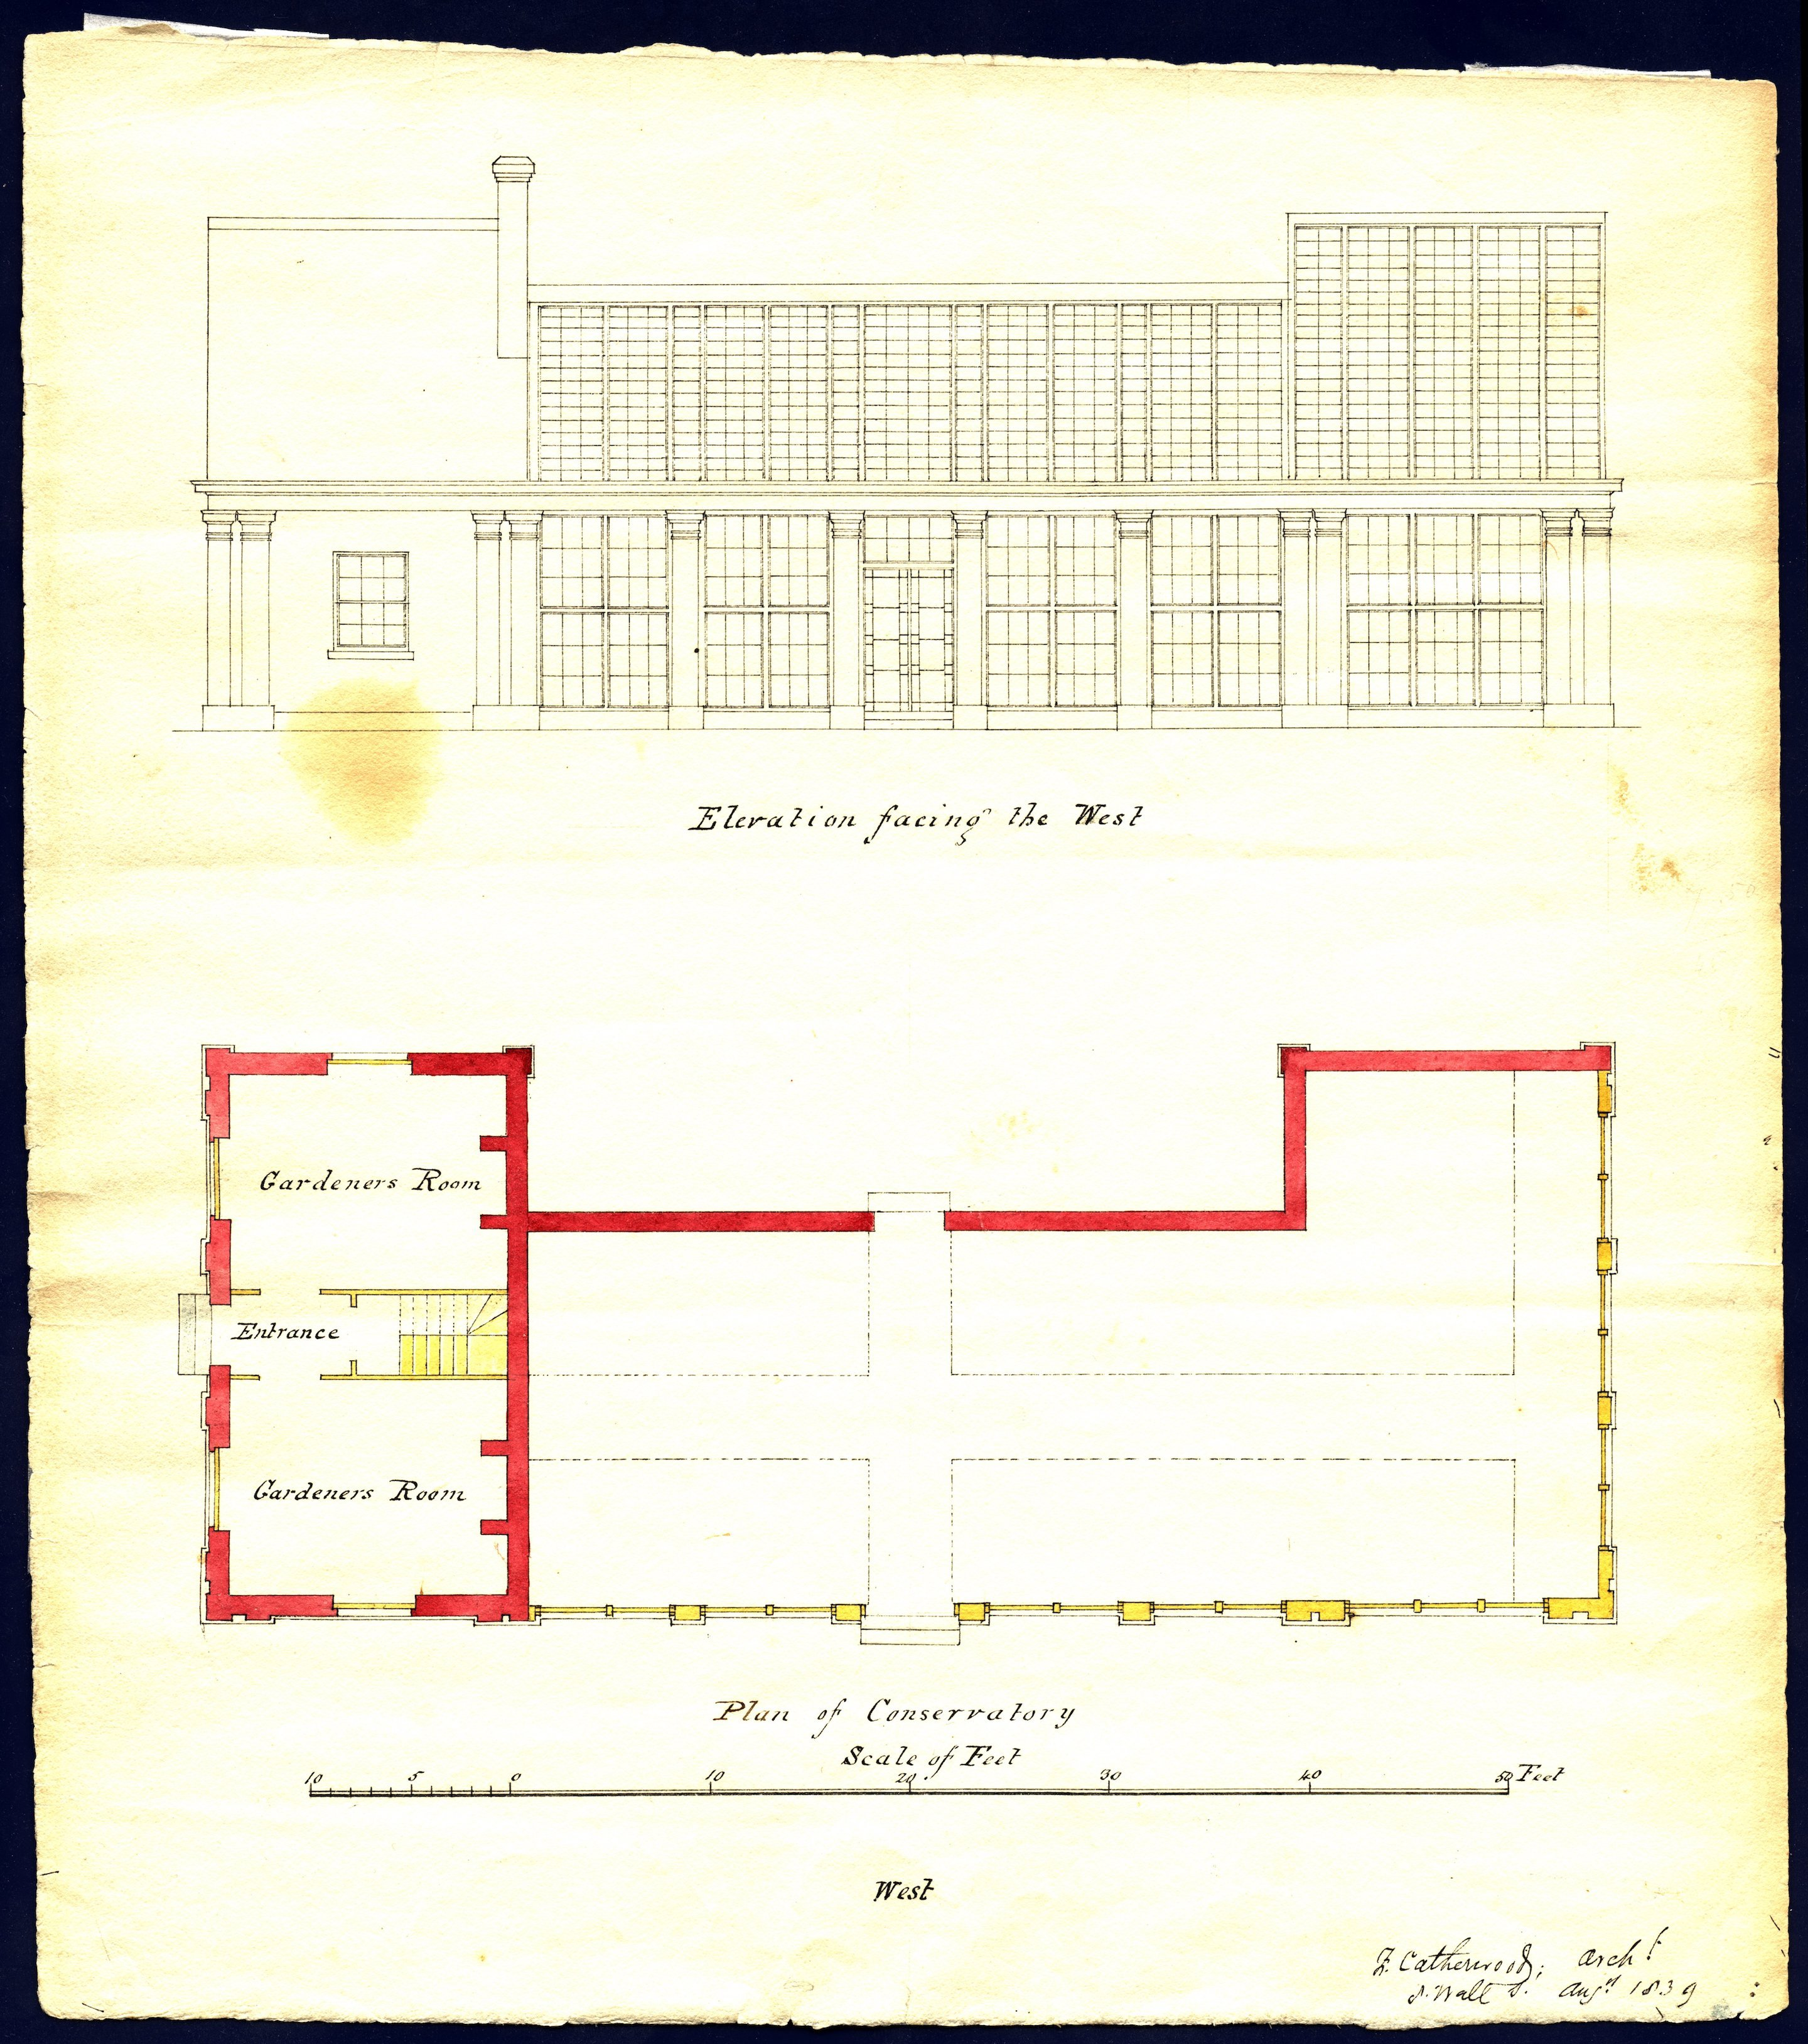 Plan of Conservatory